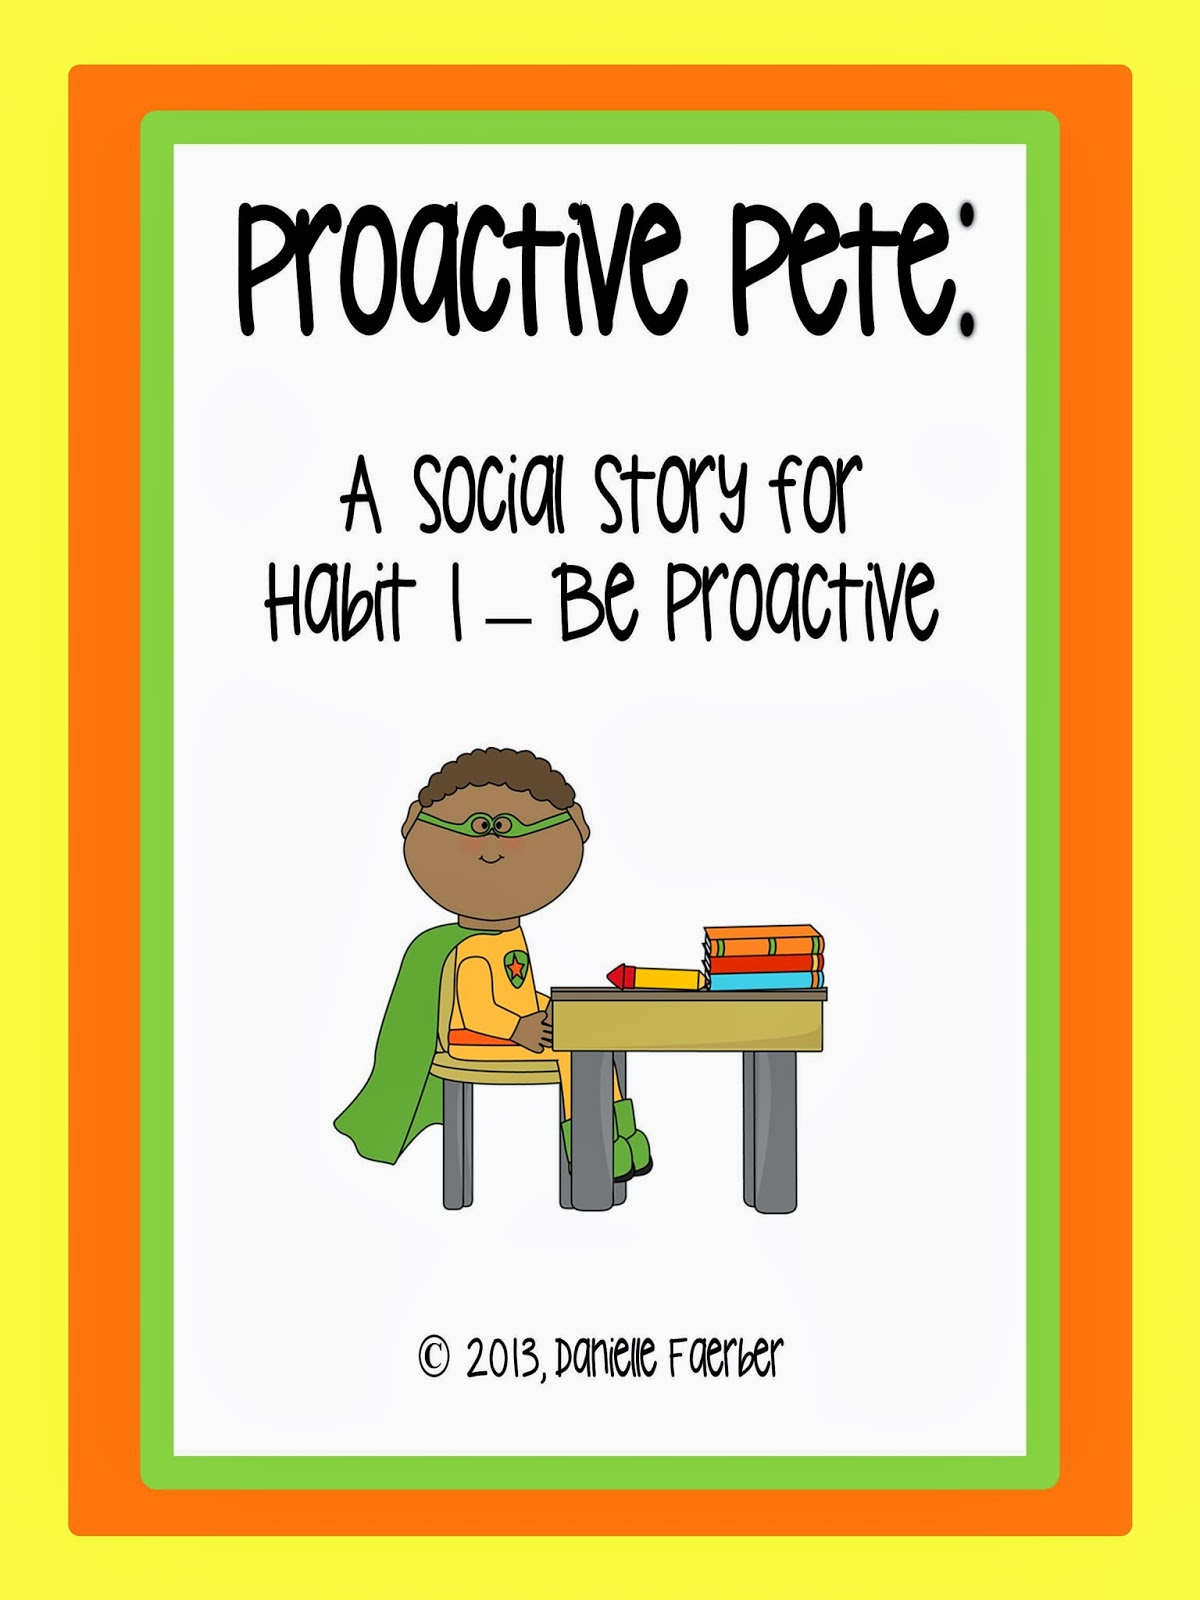 http://www.teacherspayteachers.com/Product/Proactive-Pete-A-Social-Story-for-Habit-1-Be-Proactive-540947